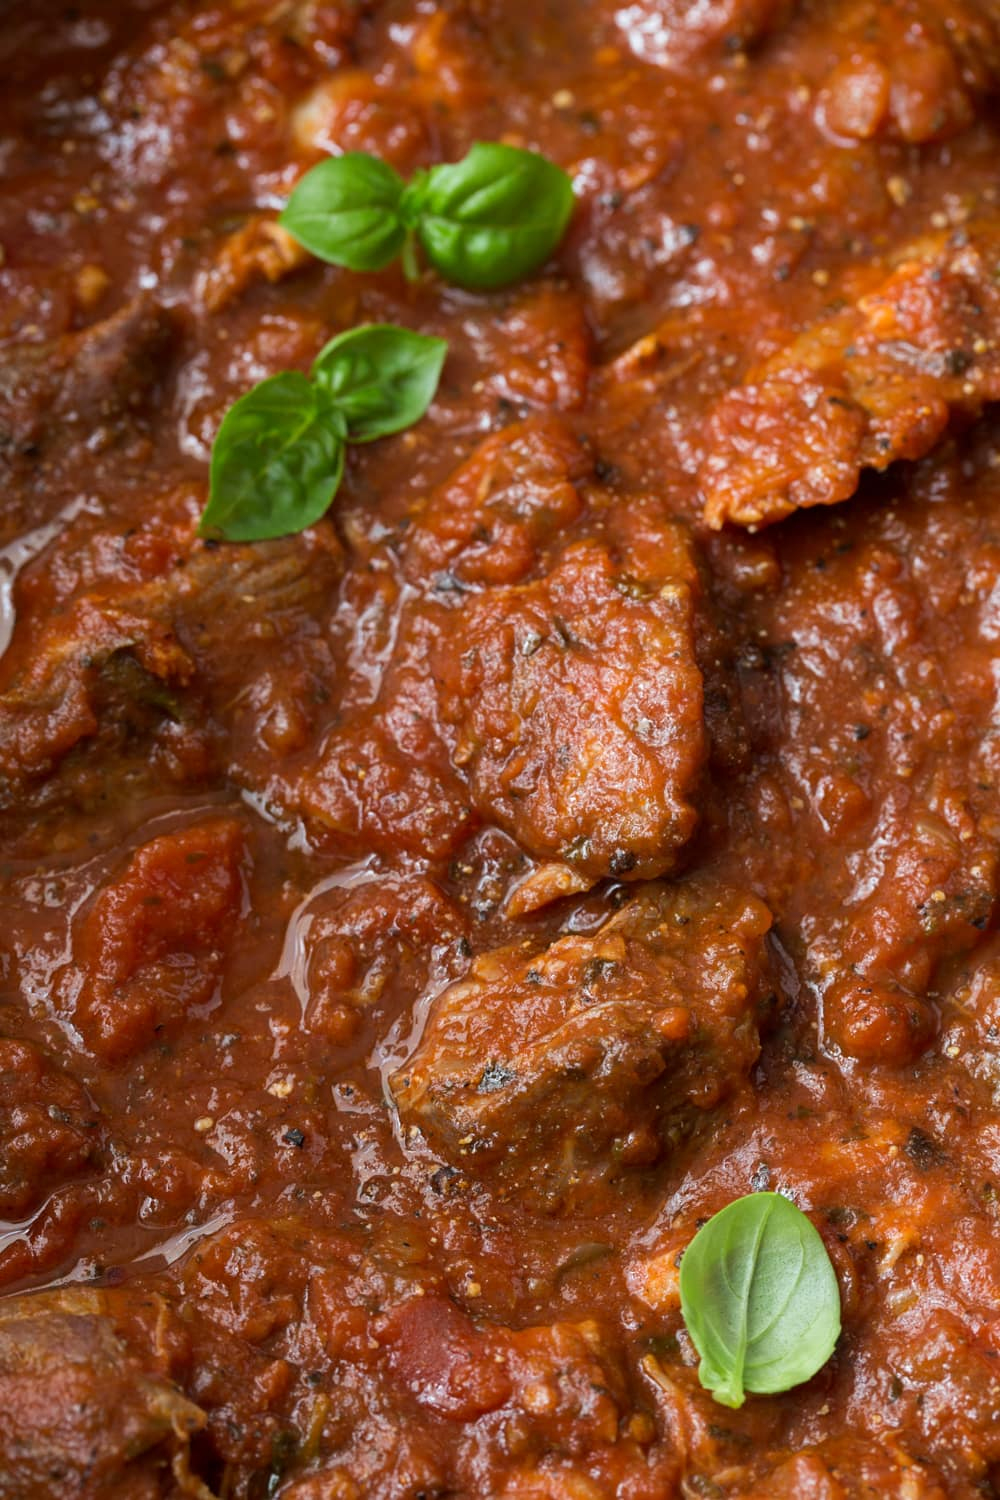 Slow Roasted Italian Pork - make-ahead, super tender and succulent pork in a thick, rich Italian tomato sauce.